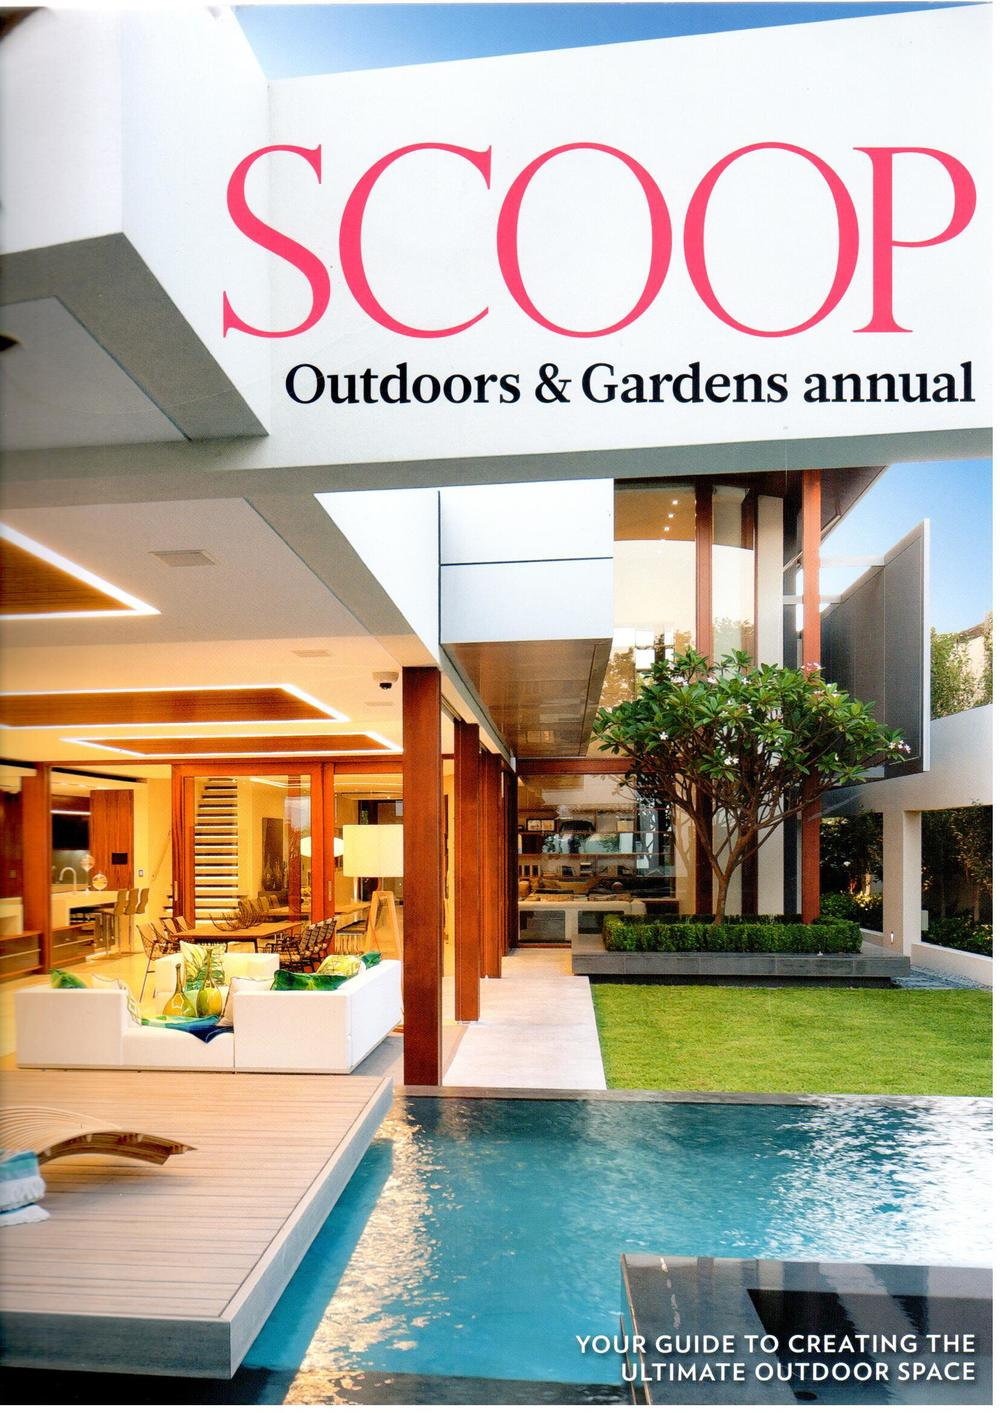 Scoop Outdoor Annual 2014 Cover.jpg